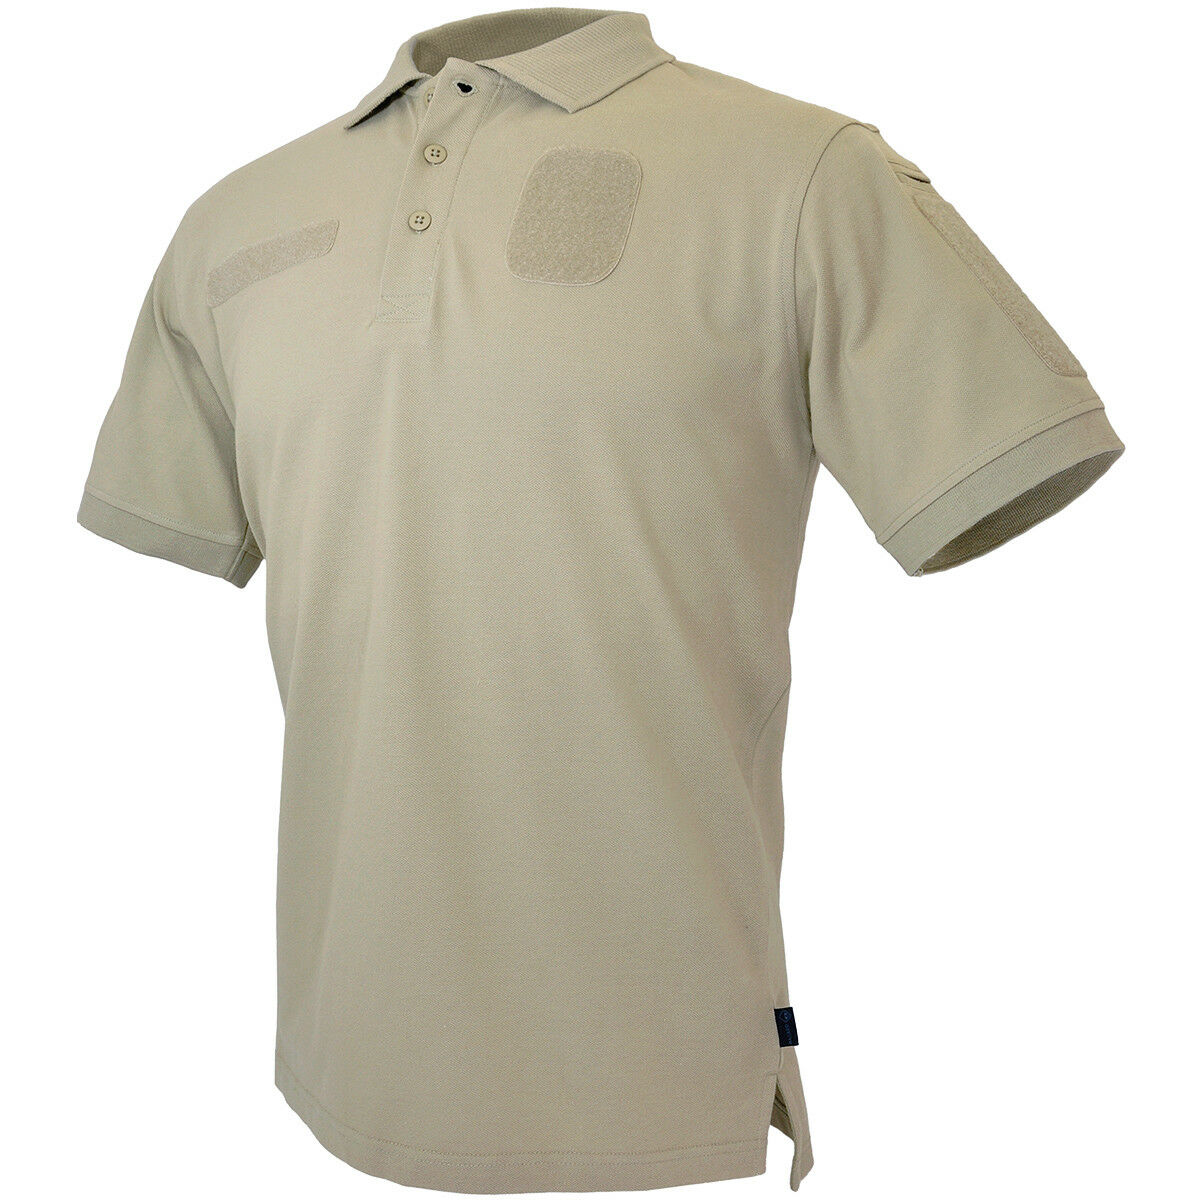 Hazard 4 Loaded ID Centric Battle Polo Shirt Mens Tactical Patrol Casual Top Tan